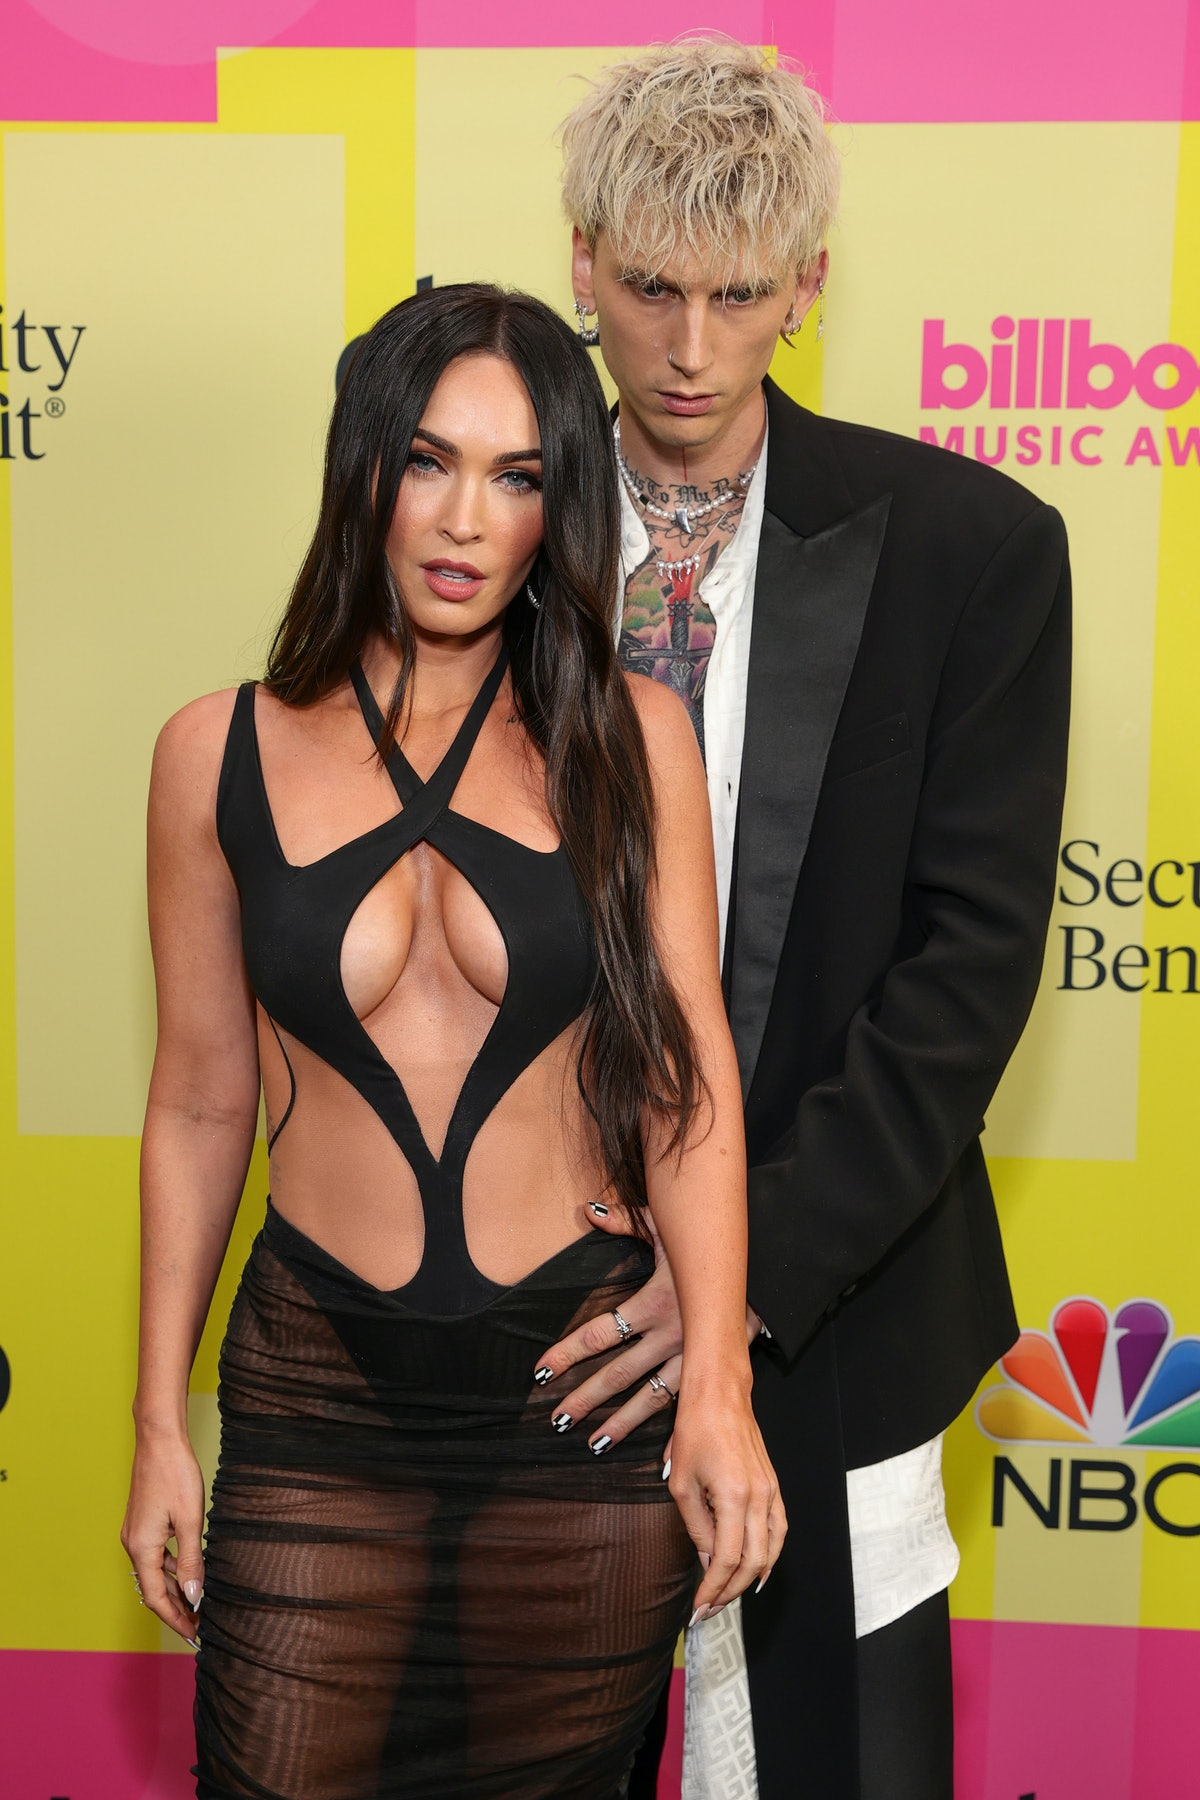 LOS ANGELES, CALIFORNIA - MAY 23: Machine Gun Kelly and Meghan Fox poses backstage for the 2021 Billboard Music Awards, broadcast on May 23, 2021 at Microsoft Theater in Los Angeles, California. (Photo by Rich Fury/Getty Images for dcp)